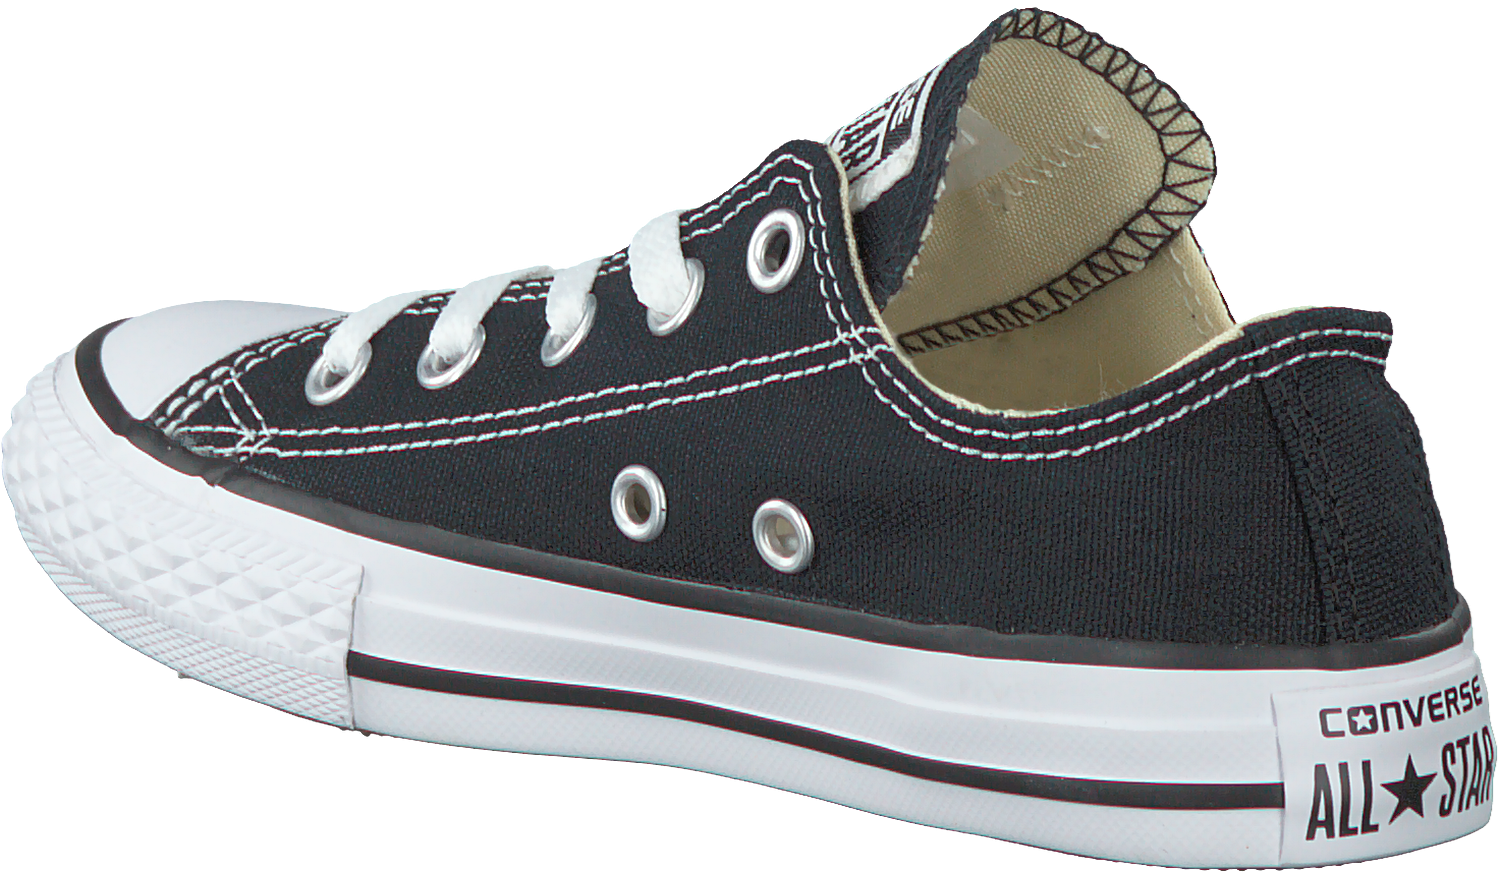 fdf6f68f81e Zwarte CONVERSE Sneakers CHUCK TAYLOR ALL STAR OX KIDS. CONVERSE. Previous